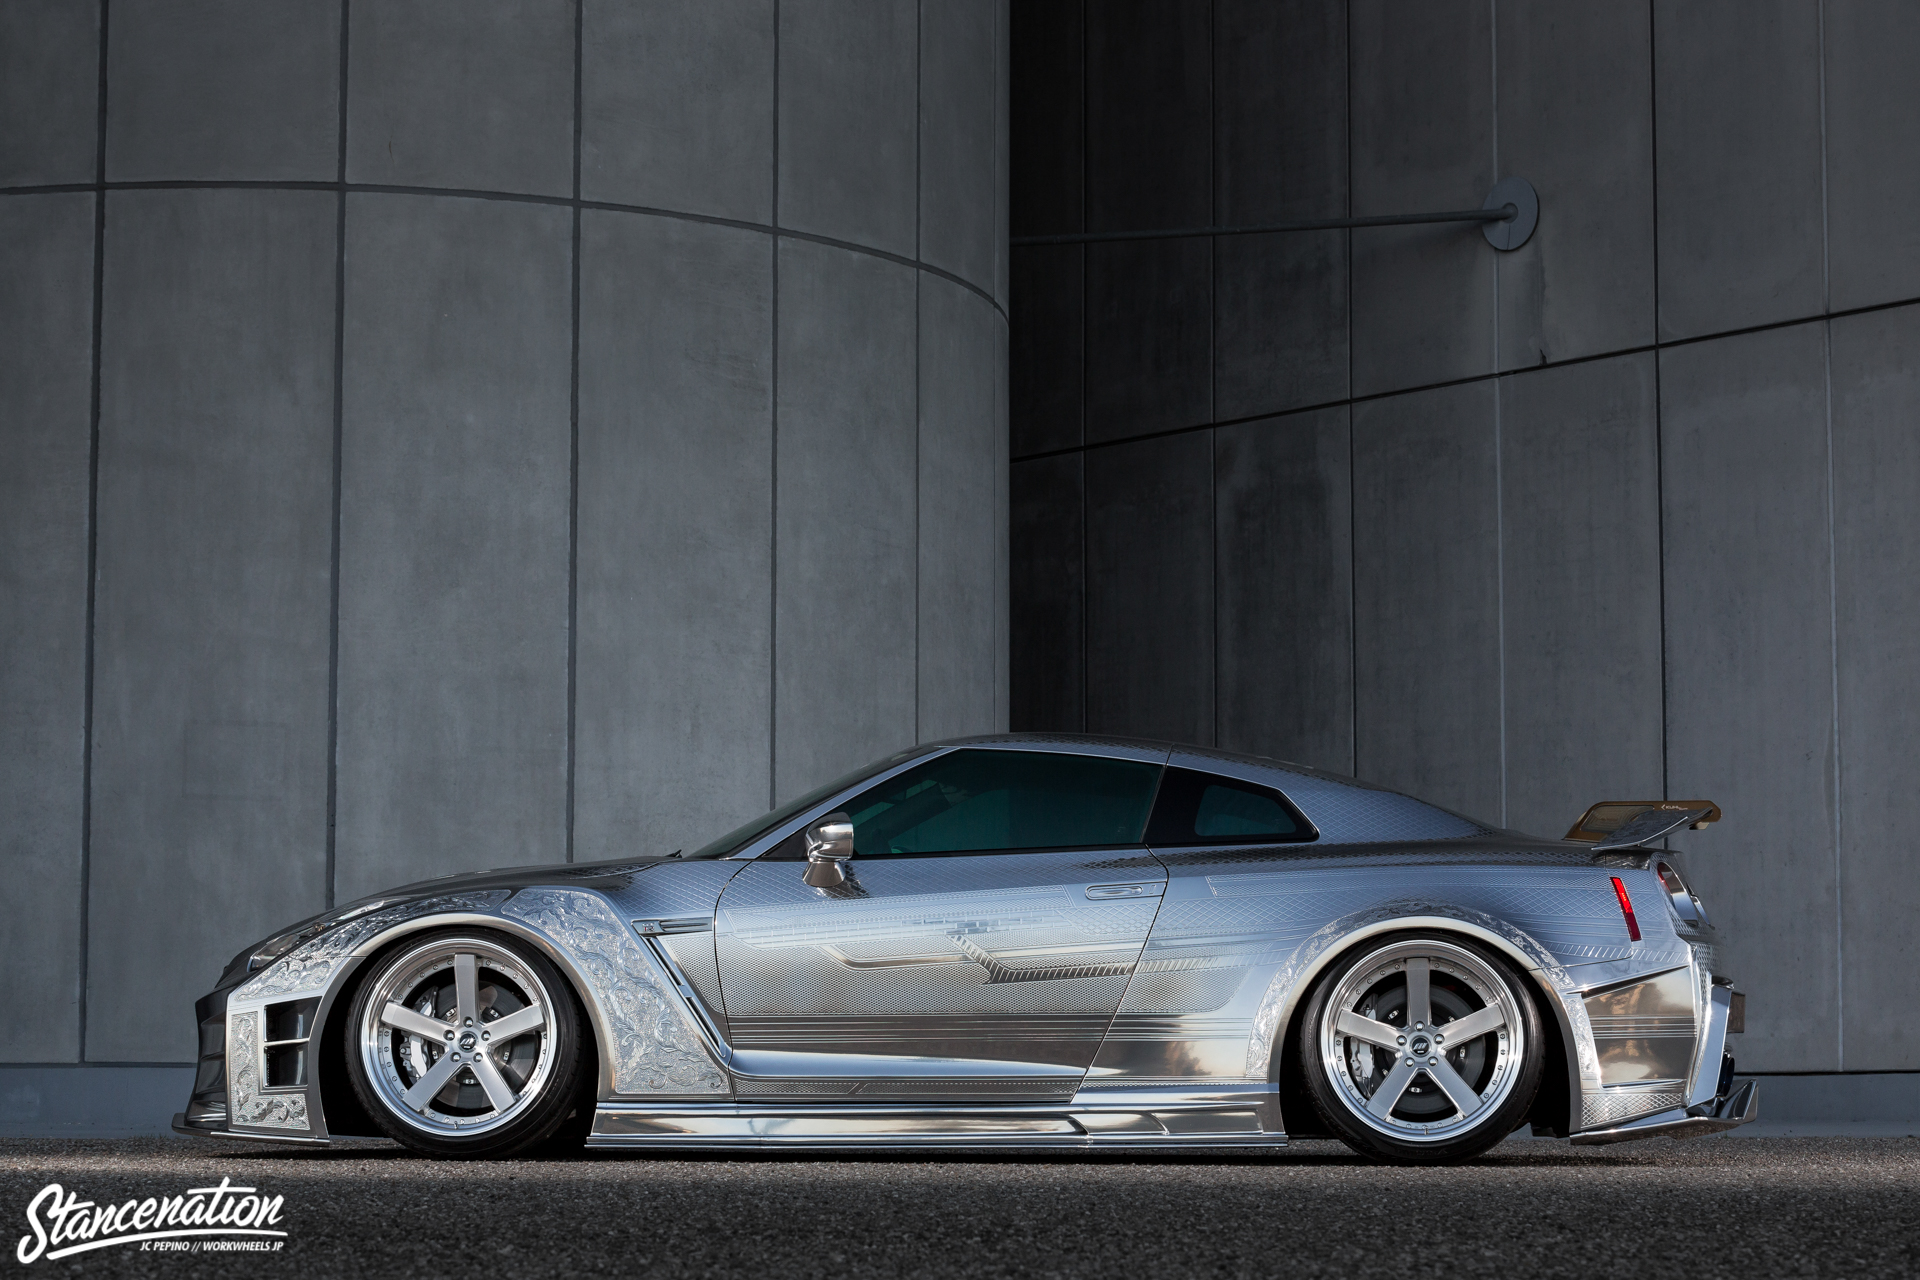 Nissan Of Brandon >> The Kuhl Kid // Kuhl Racing's R35 GTR. | StanceNation™ // Form > Function